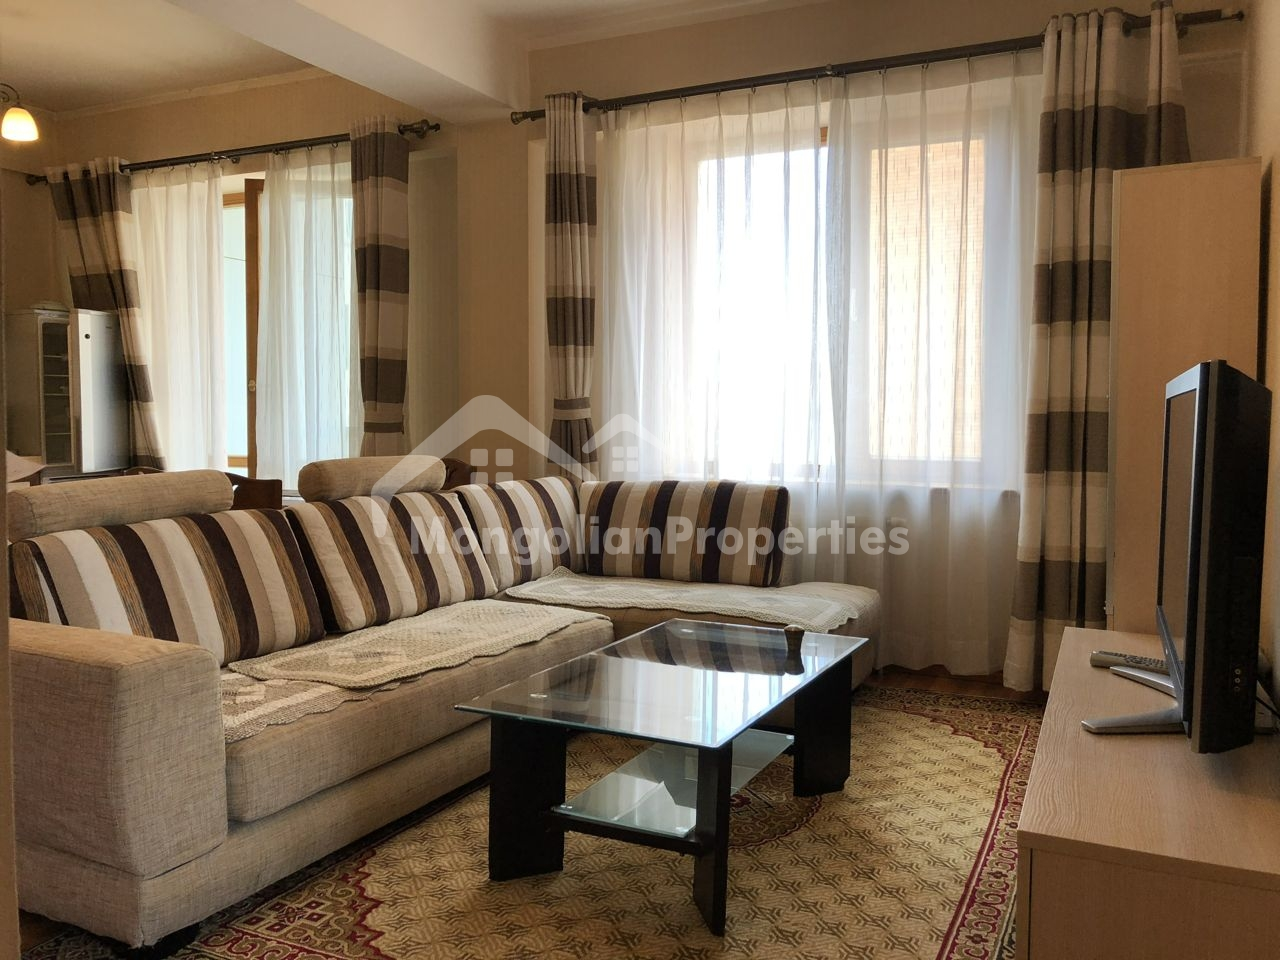 Very cozy 2 bedroom apartment is for rent near UN house and Main Square